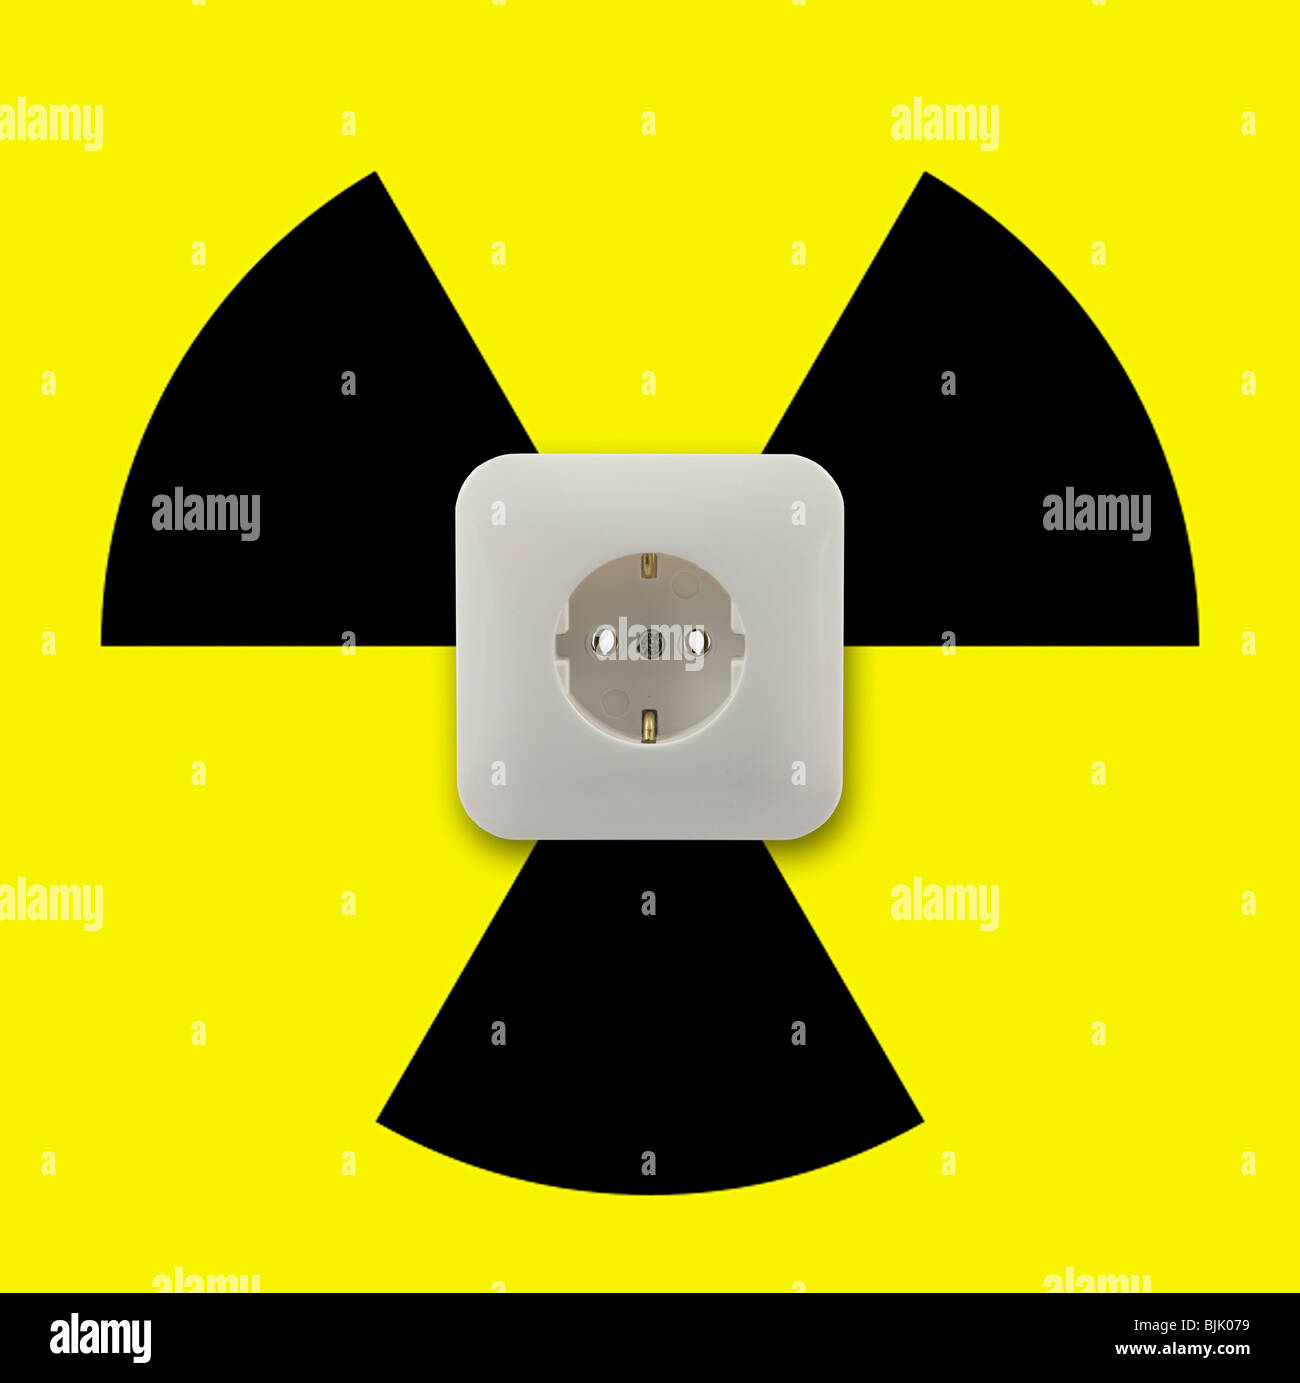 Symbolic image for electricity from nuclear energy, nuclear power Stock Photo